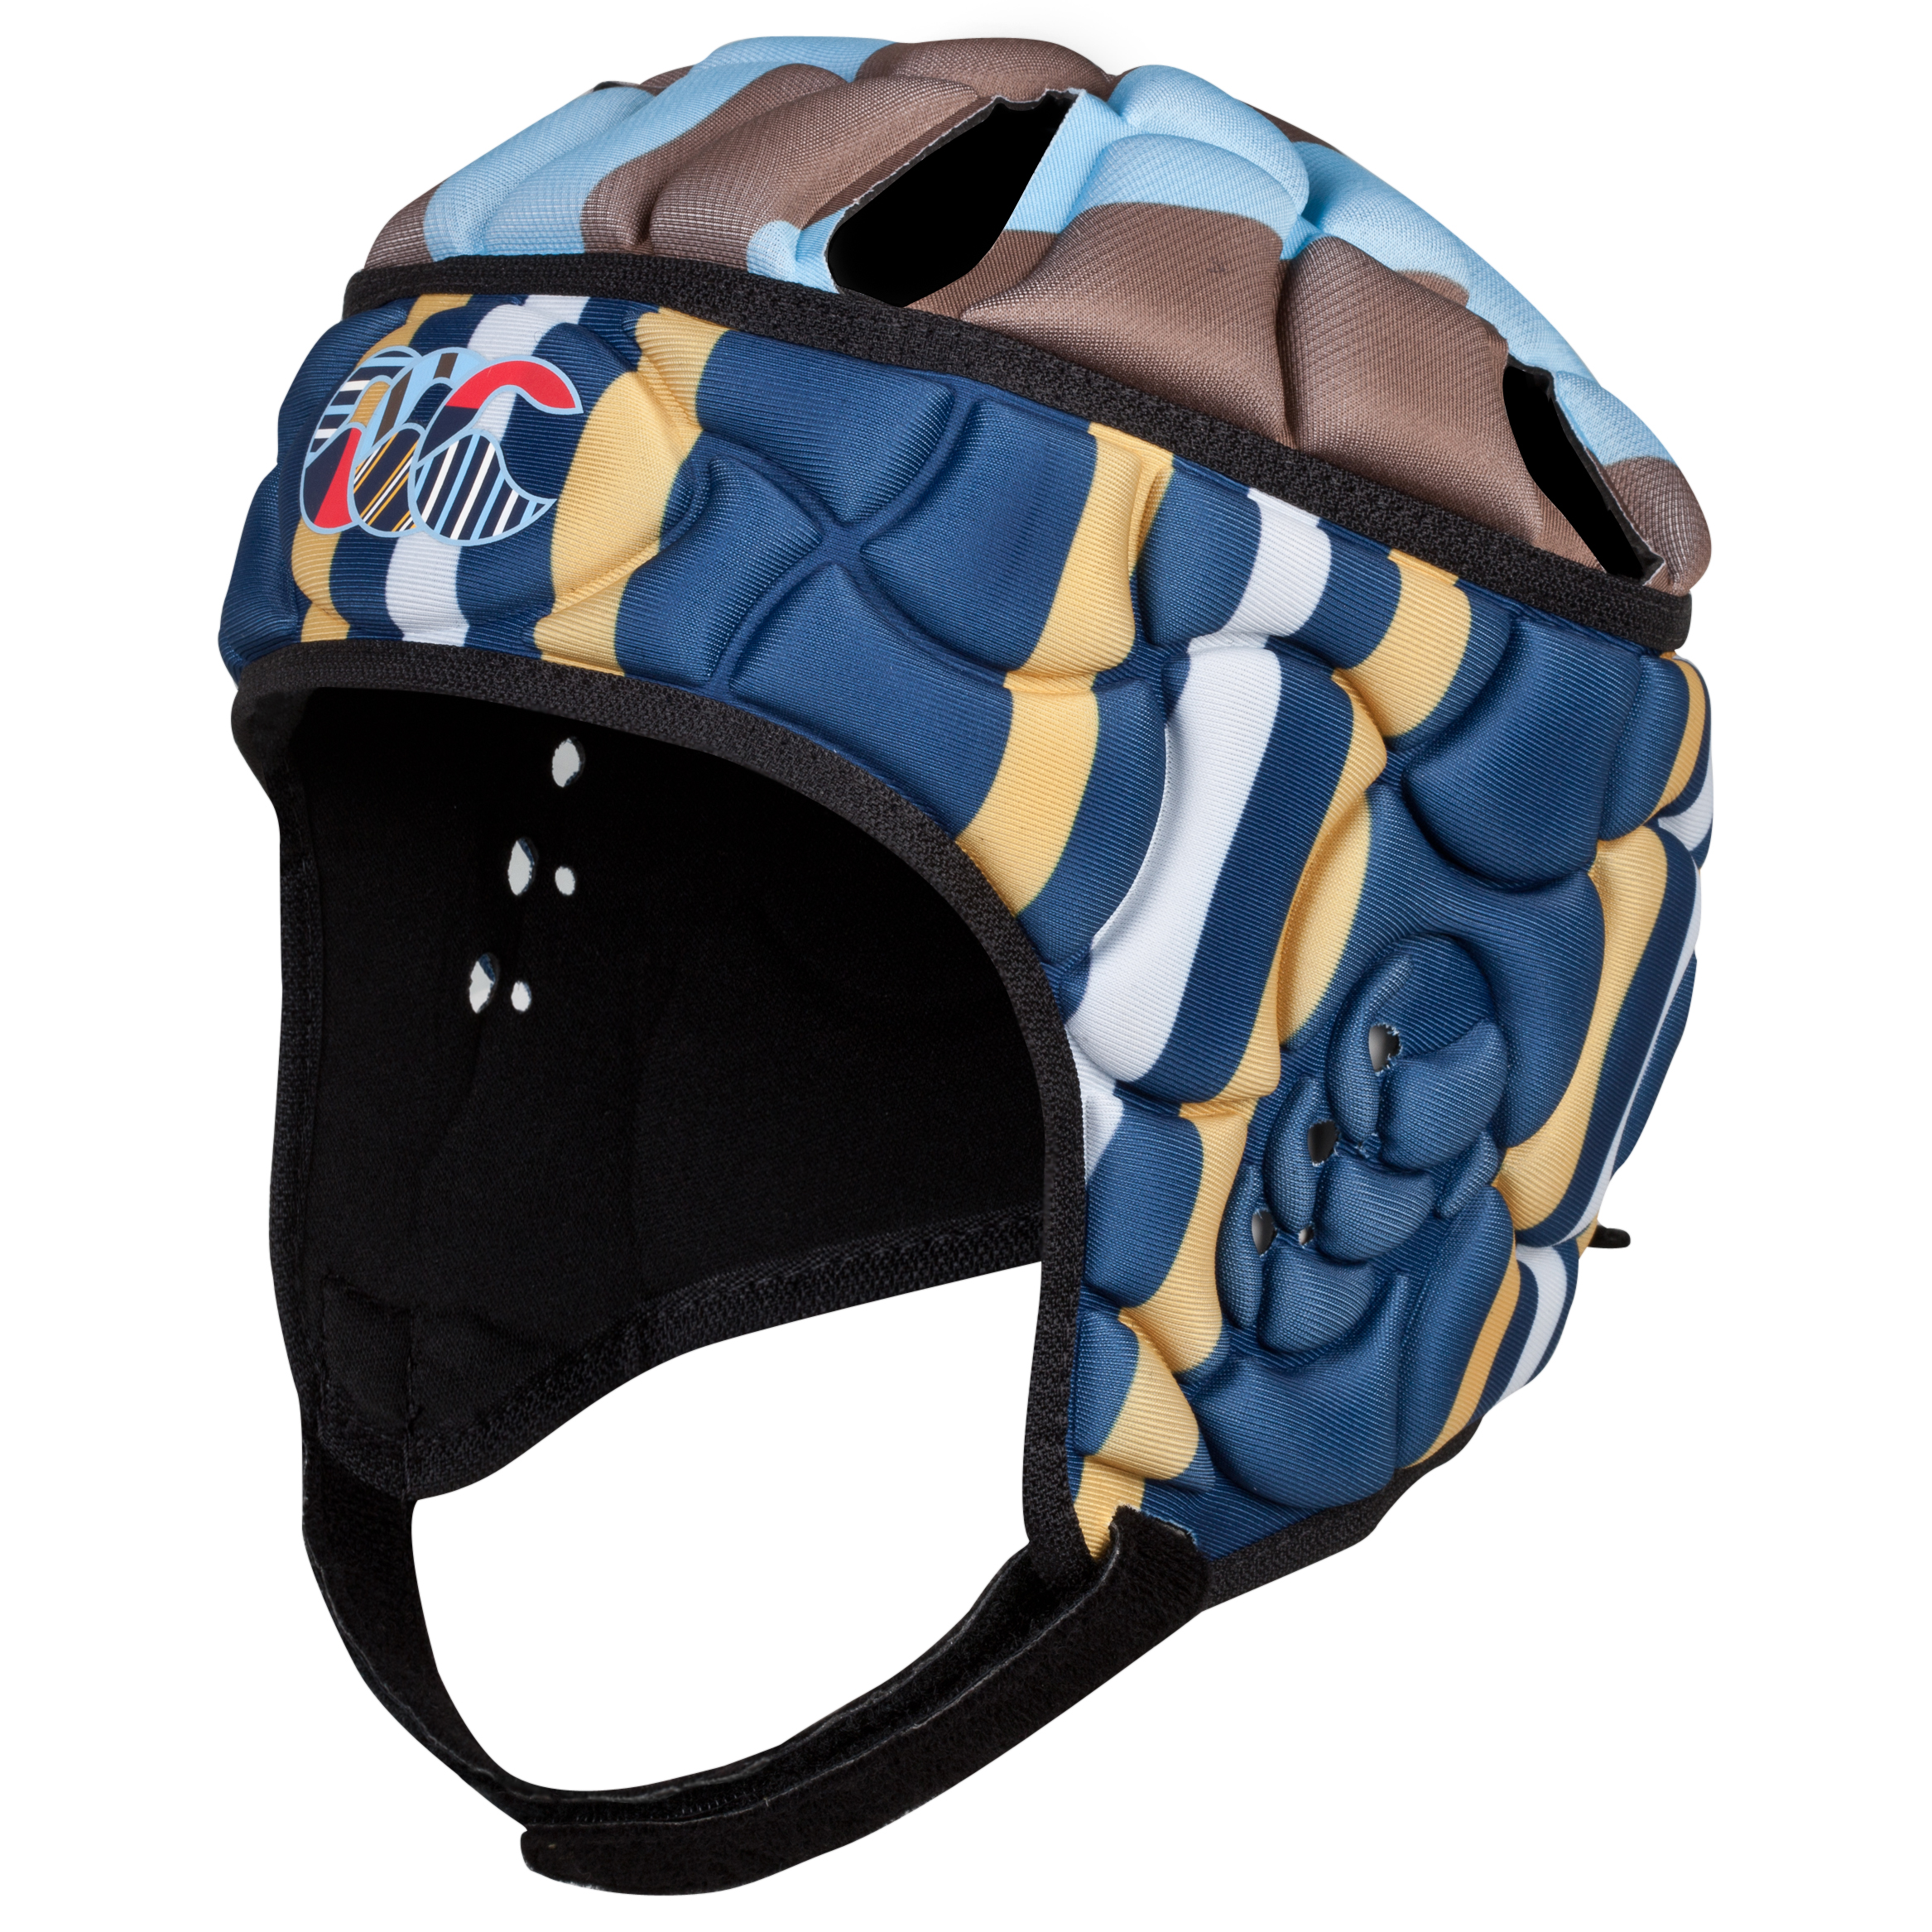 Canterbury Club Plus Headguard - Kids